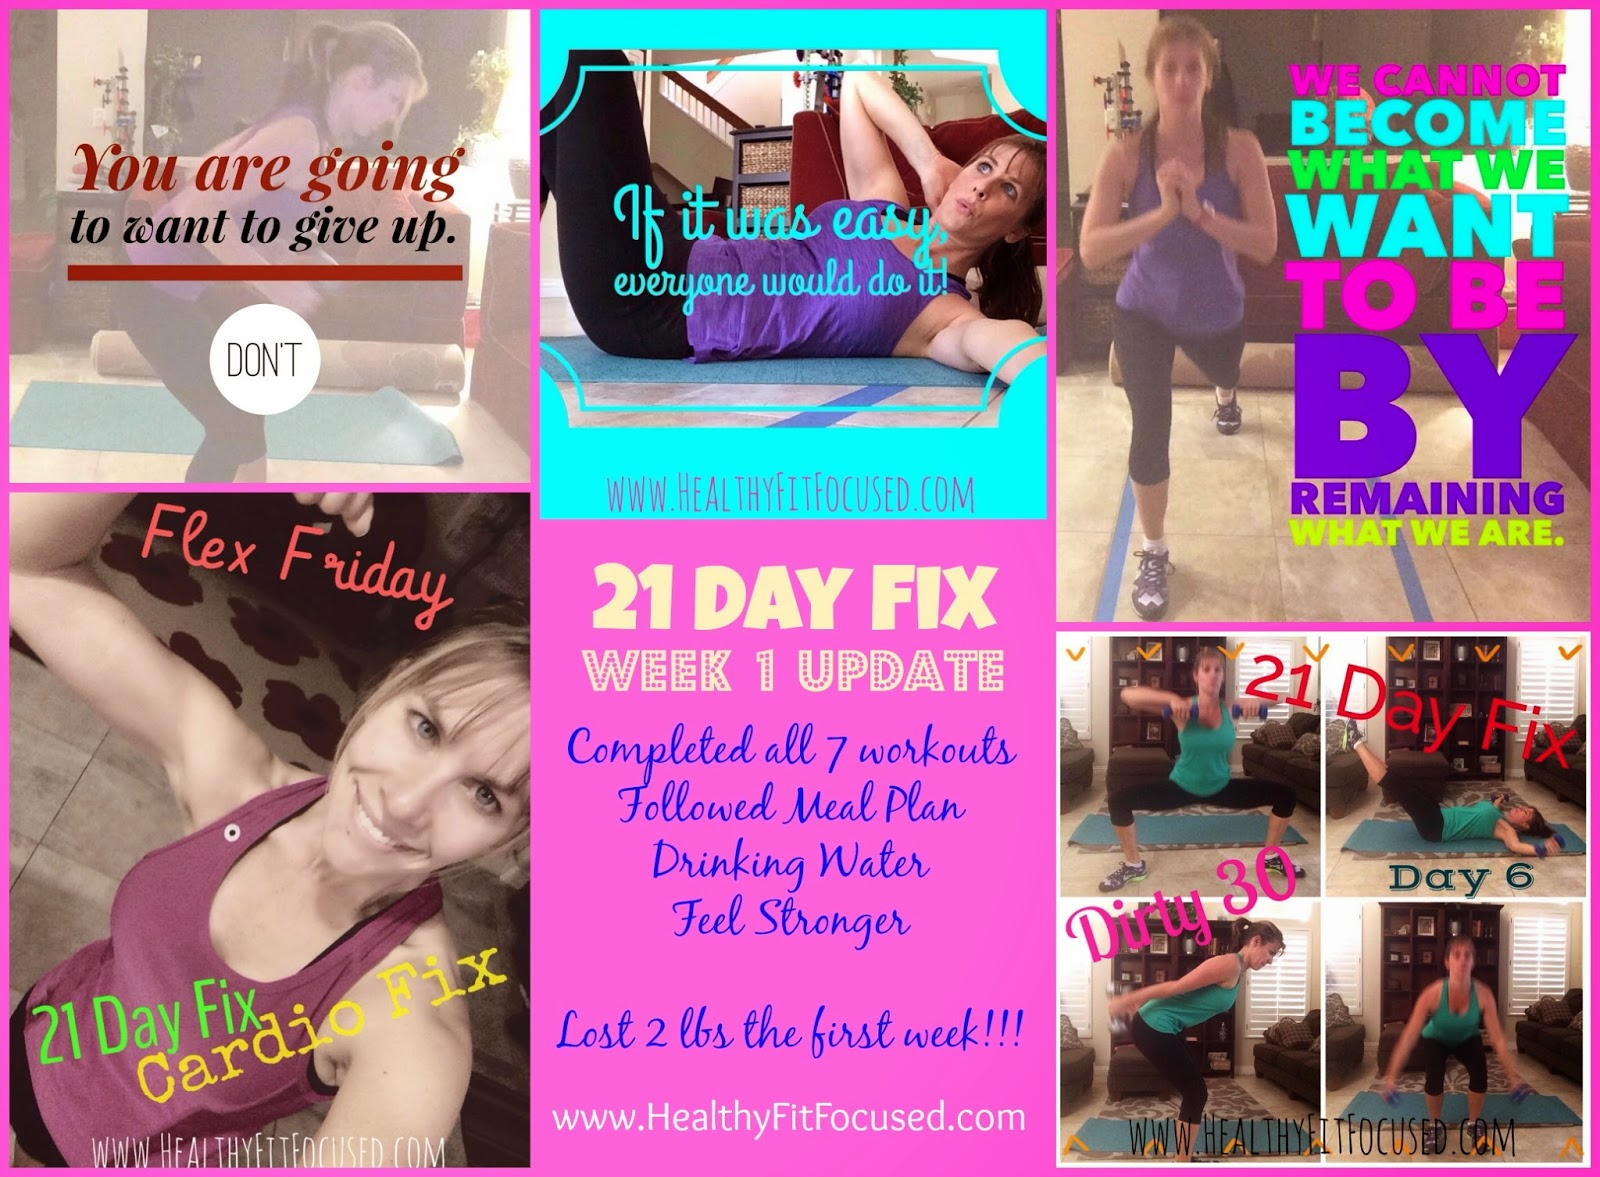 21 Day Fix, week 1 workout update